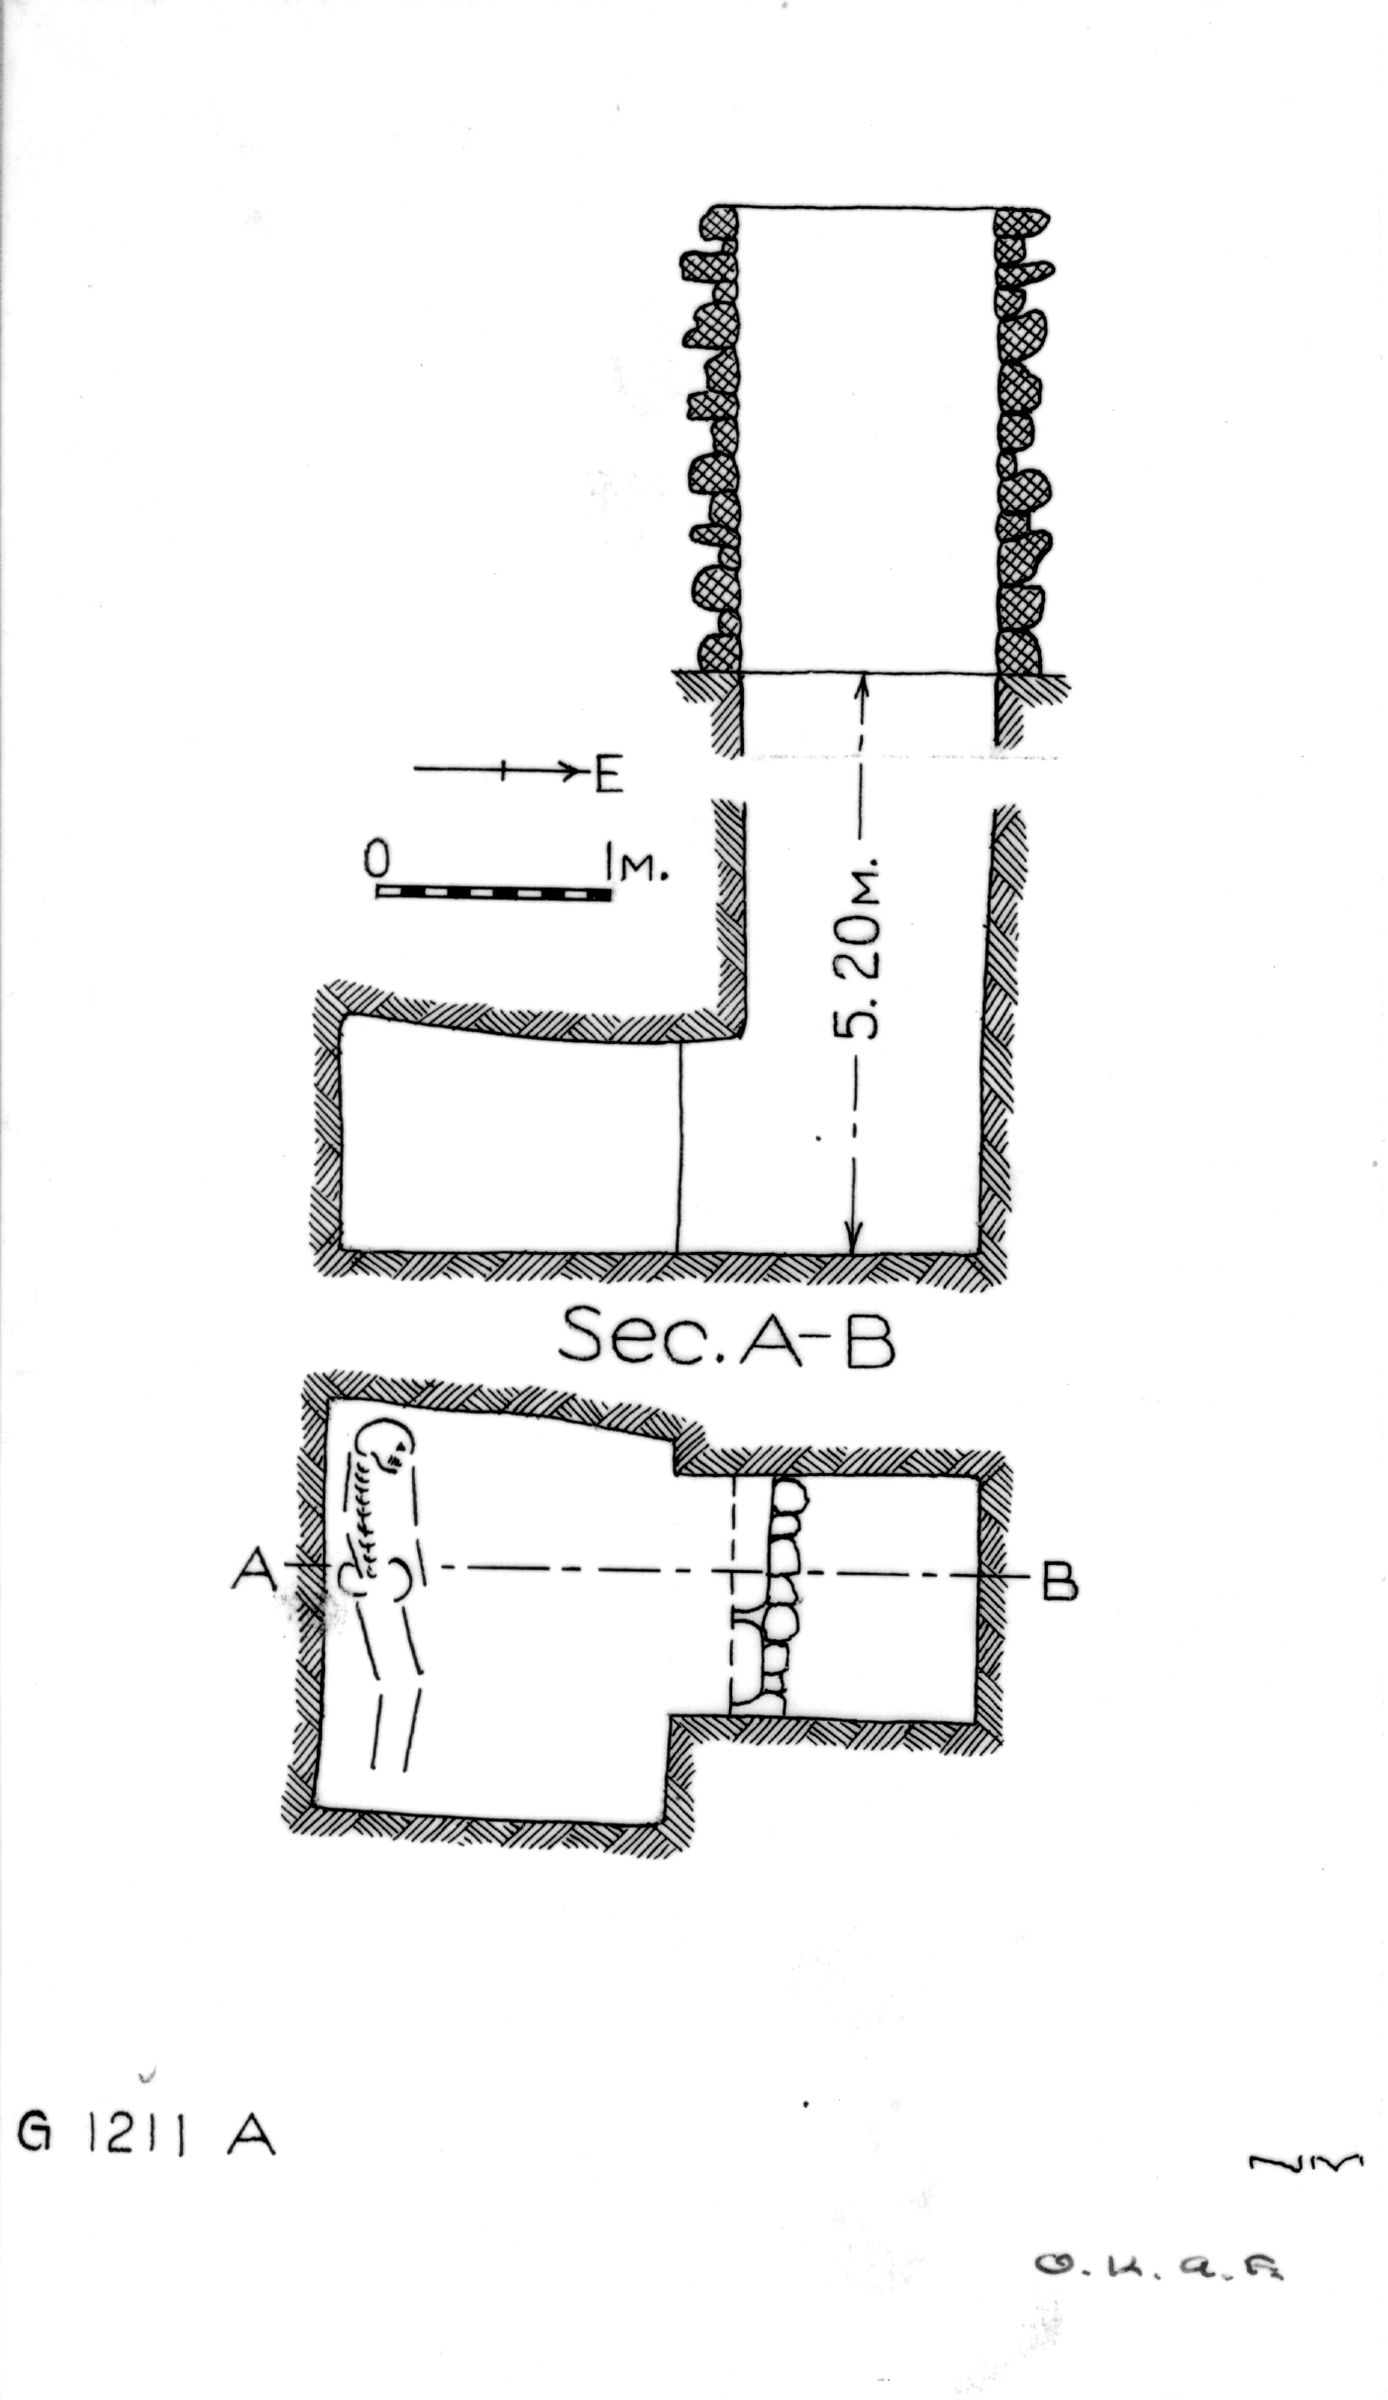 Maps and plans: G 1211, Shaft A